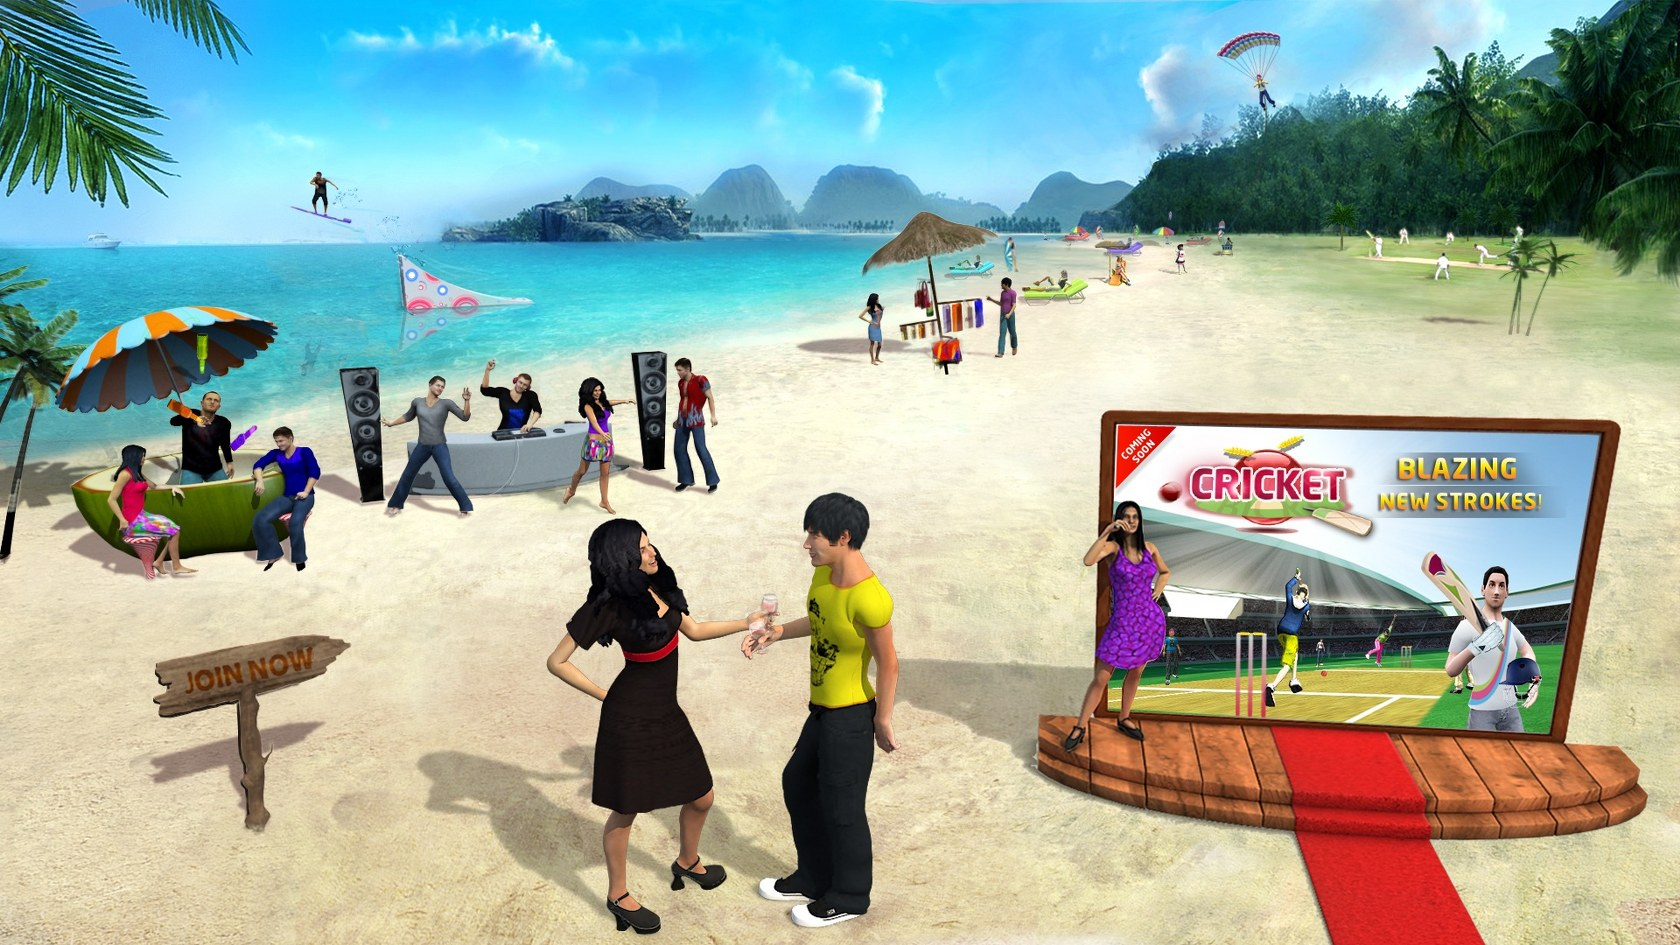 Free fashion virtual world games Official Site of New Egypt Speedway - LATEST NEWS